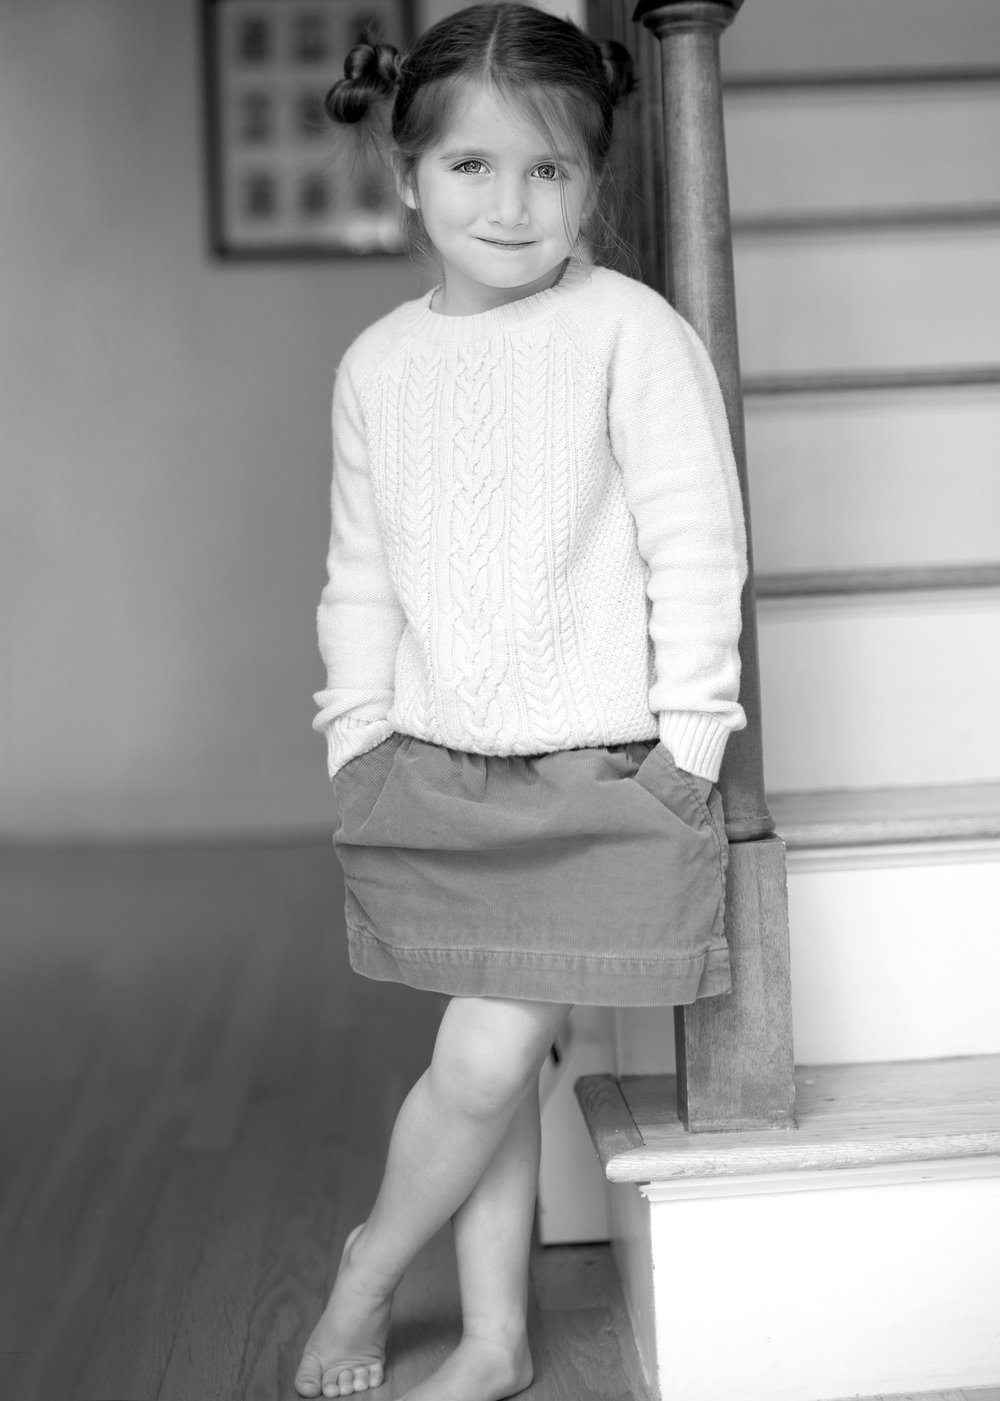 Maureen_Ford_Photography_Kids_0001.jpg